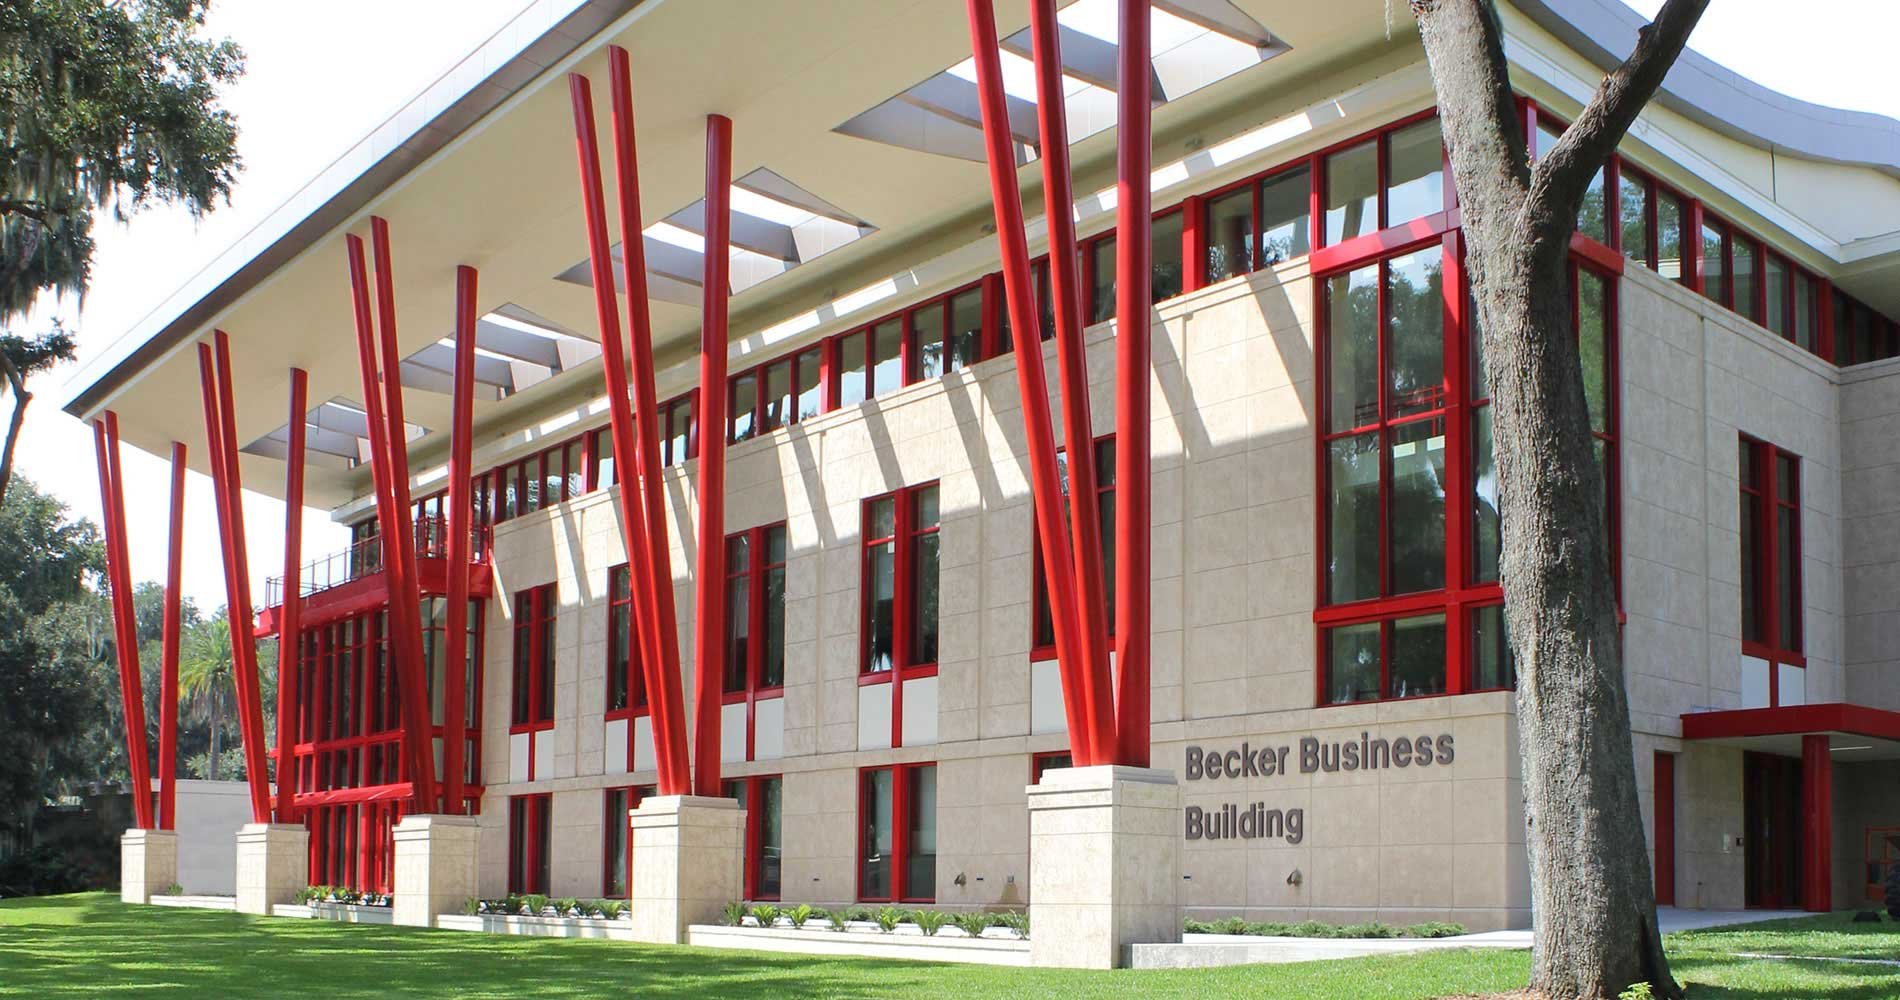 Photo of the outside of the Becker building